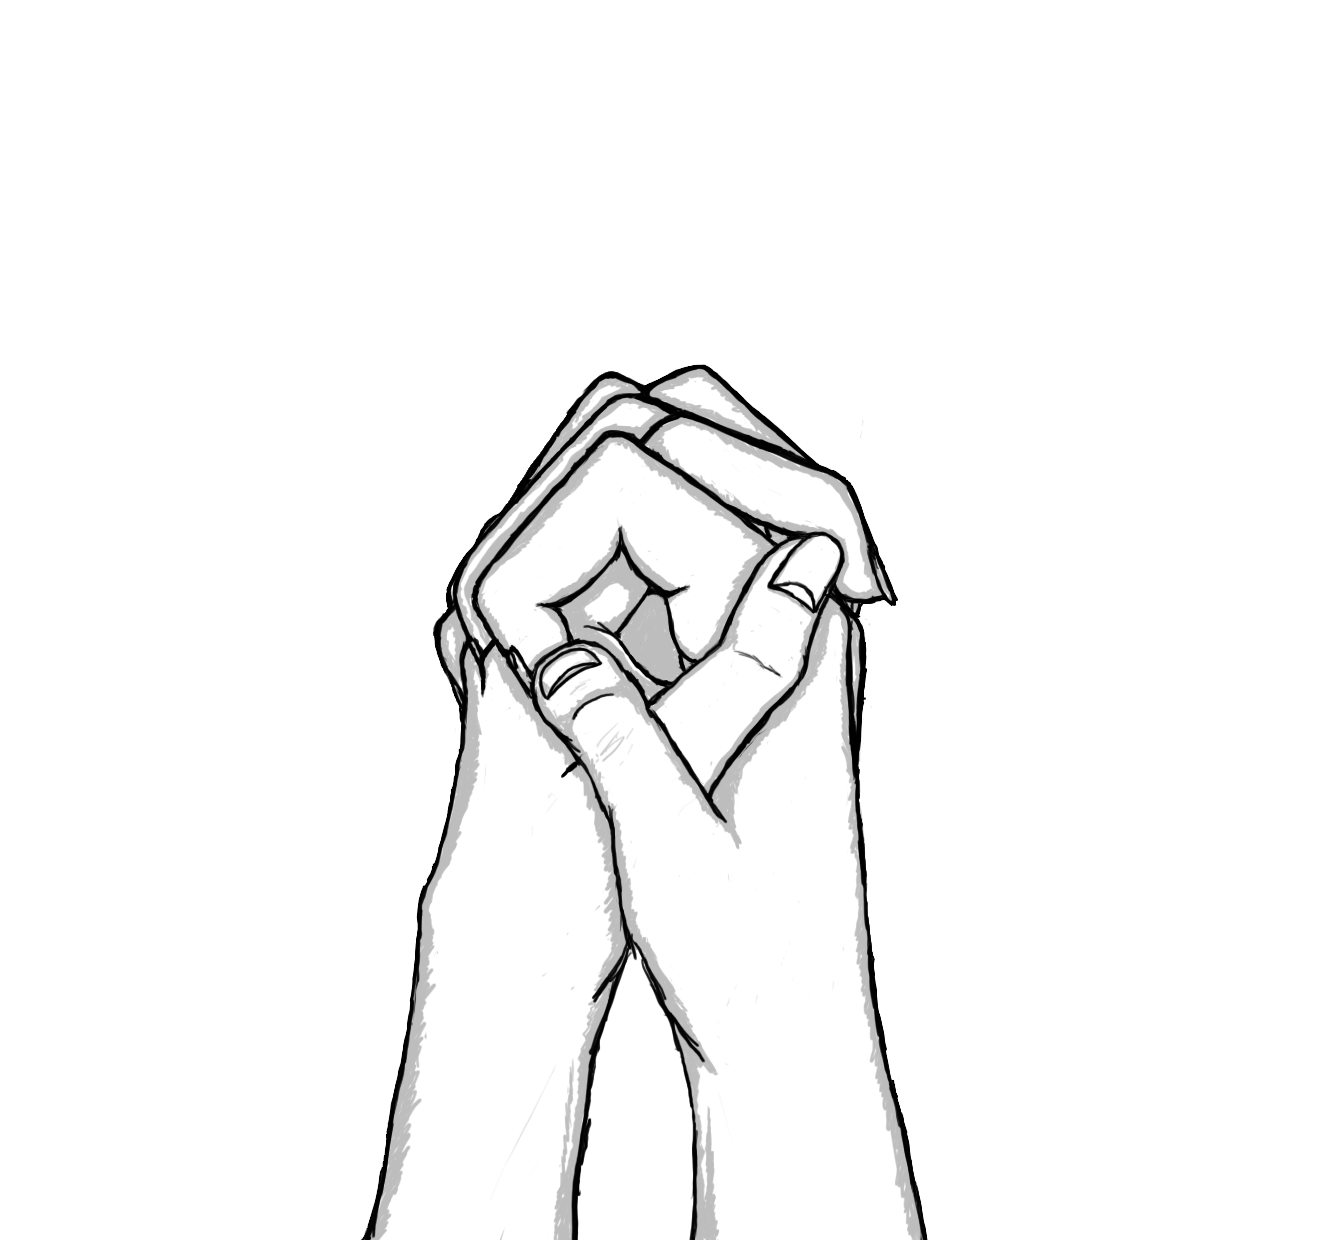 Line Art Hands : Drawings of people holding hands clipart best